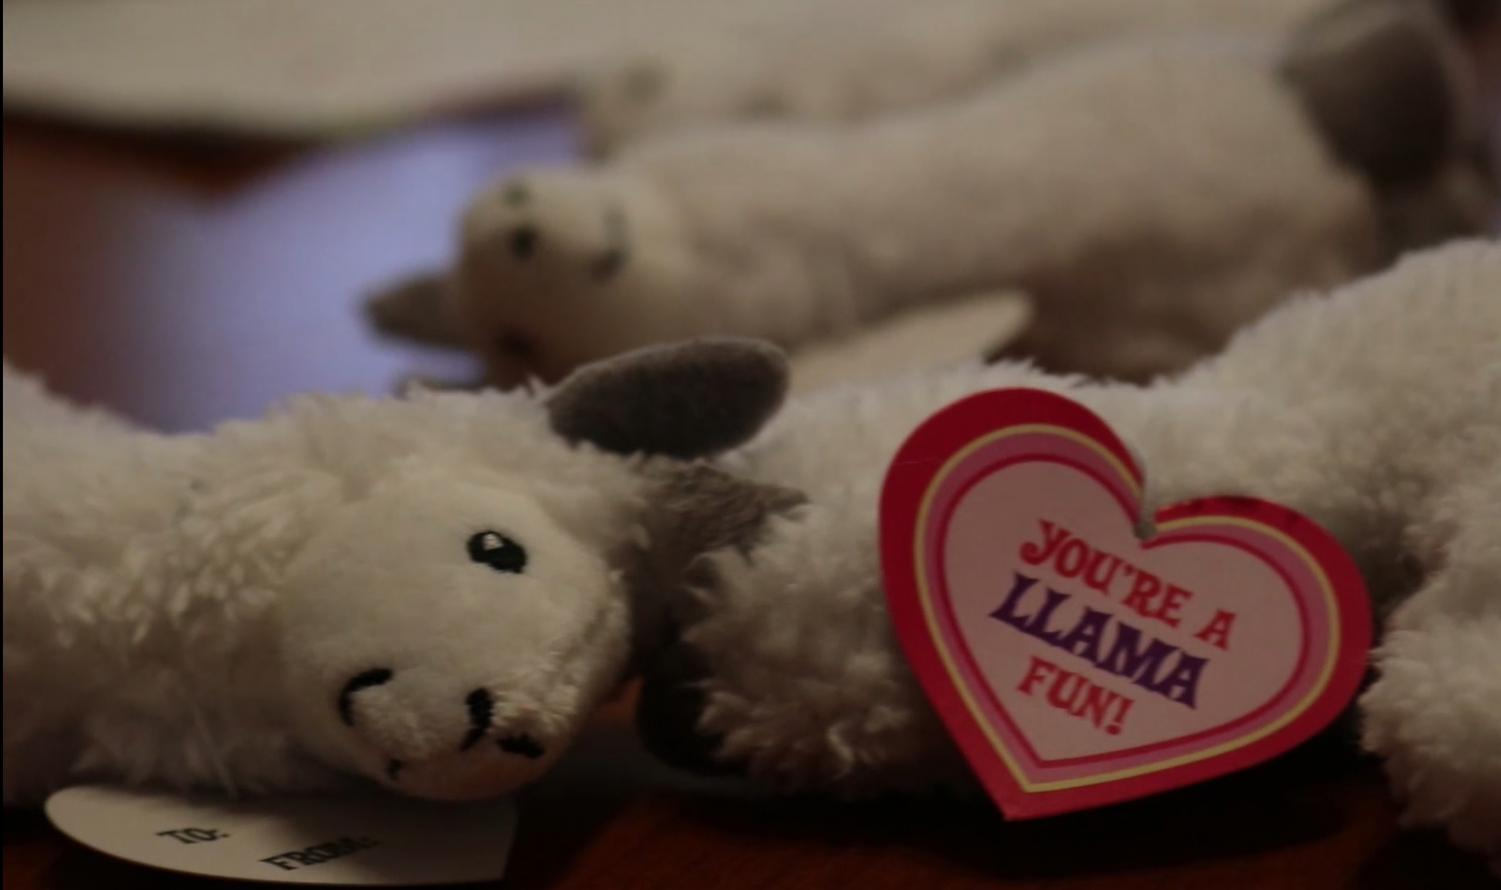 DHS students can purchase one of these llamas for $3 from Senora Pomraning. Proceeds benefit the Spanish Club.